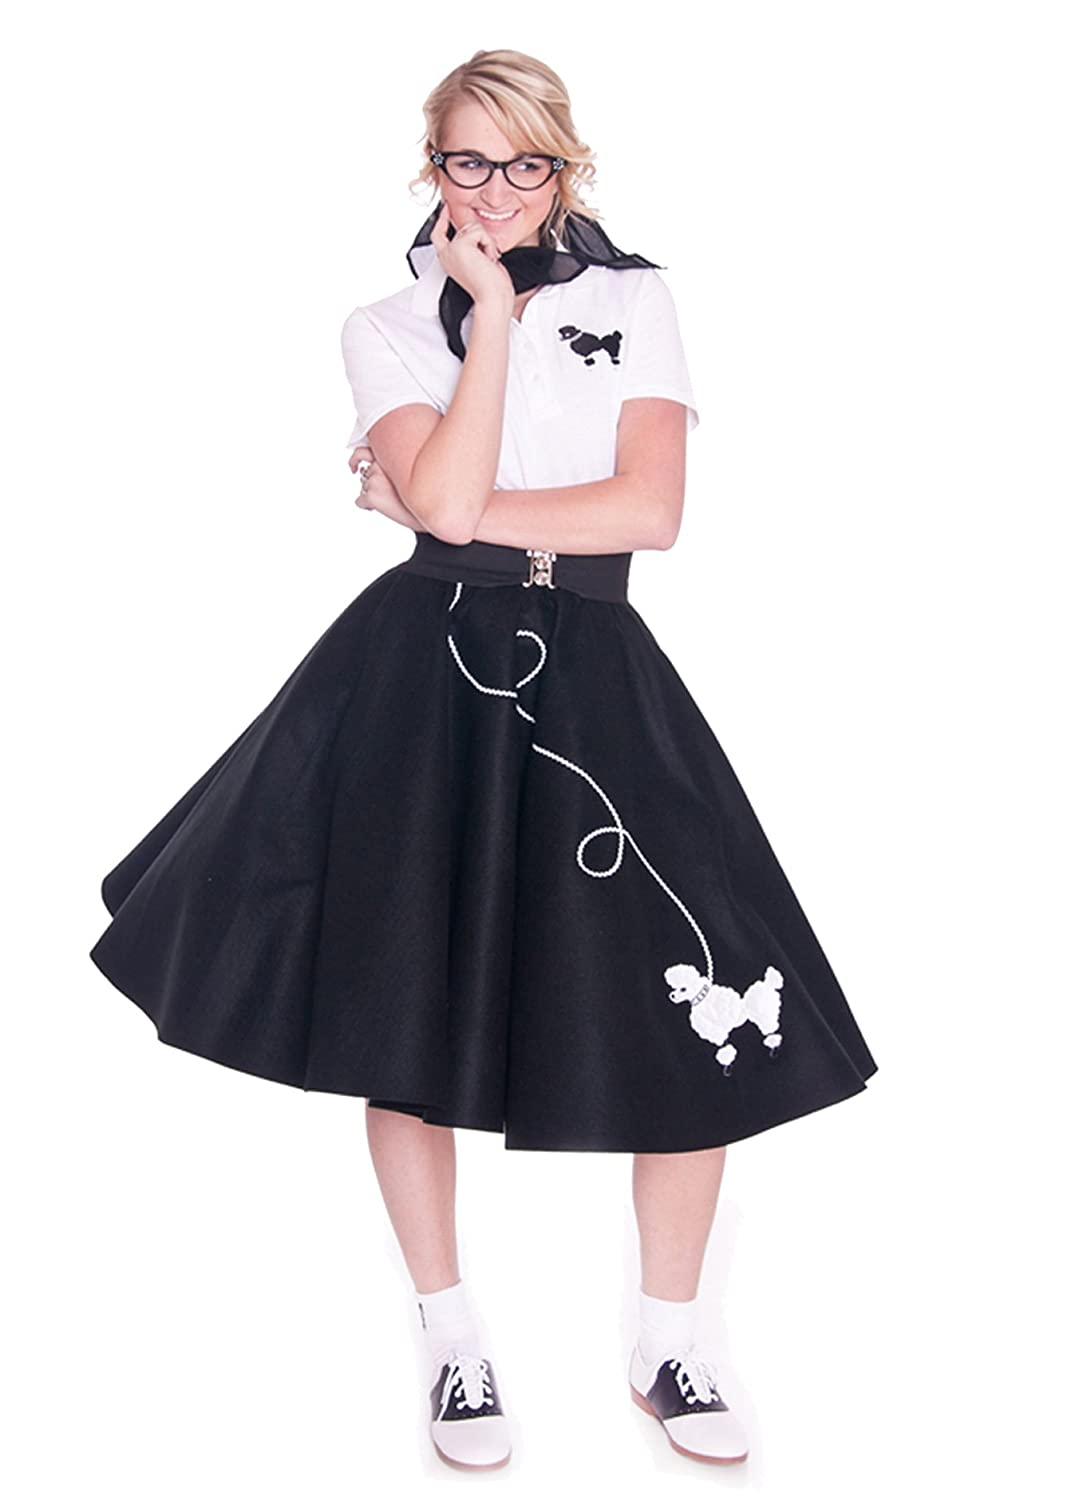 Amazon Hip Hop 50s Shop Adult Poodle Skirt Clothing